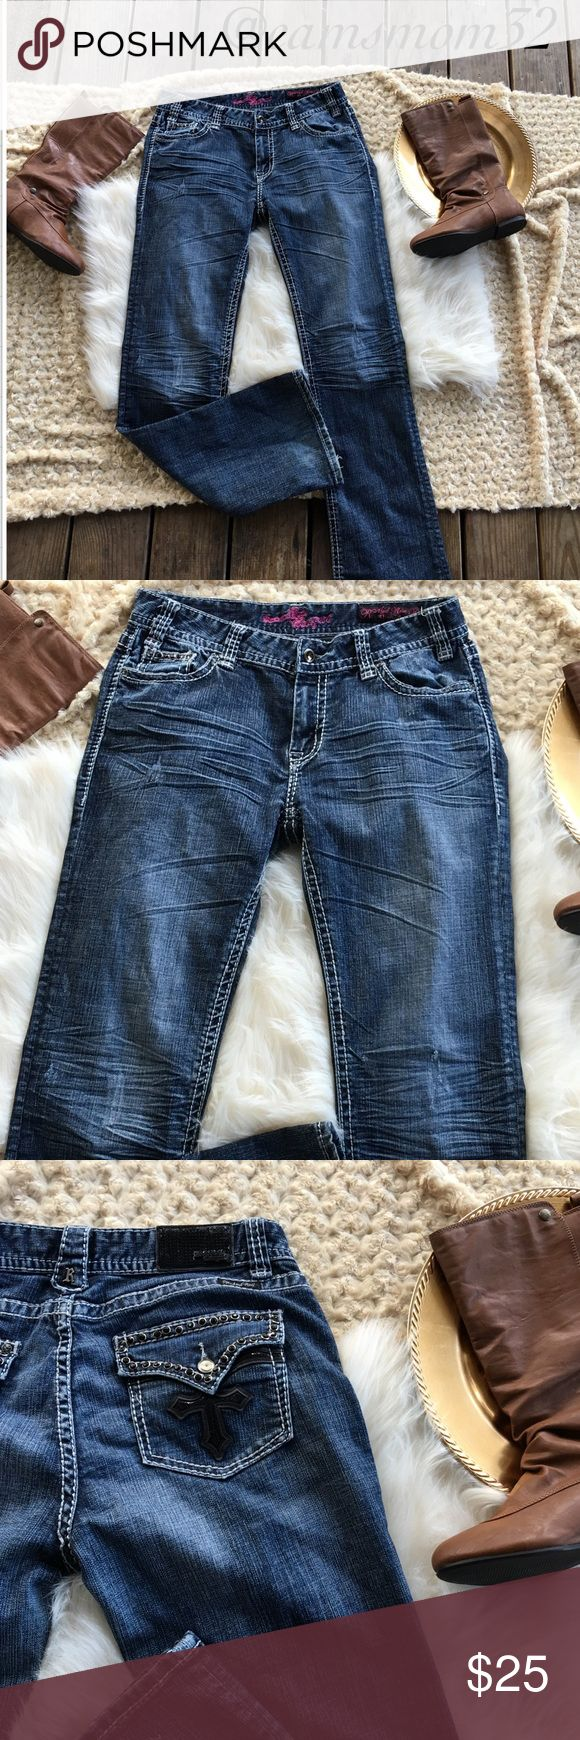 Rock and roll cowgirl jeans Great condition. Mid rise jeans. Size 31 x 34. Bundle more items and save. Thanks for checking out this listing Rock & Roll Cowgirl Jeans Boot Cut